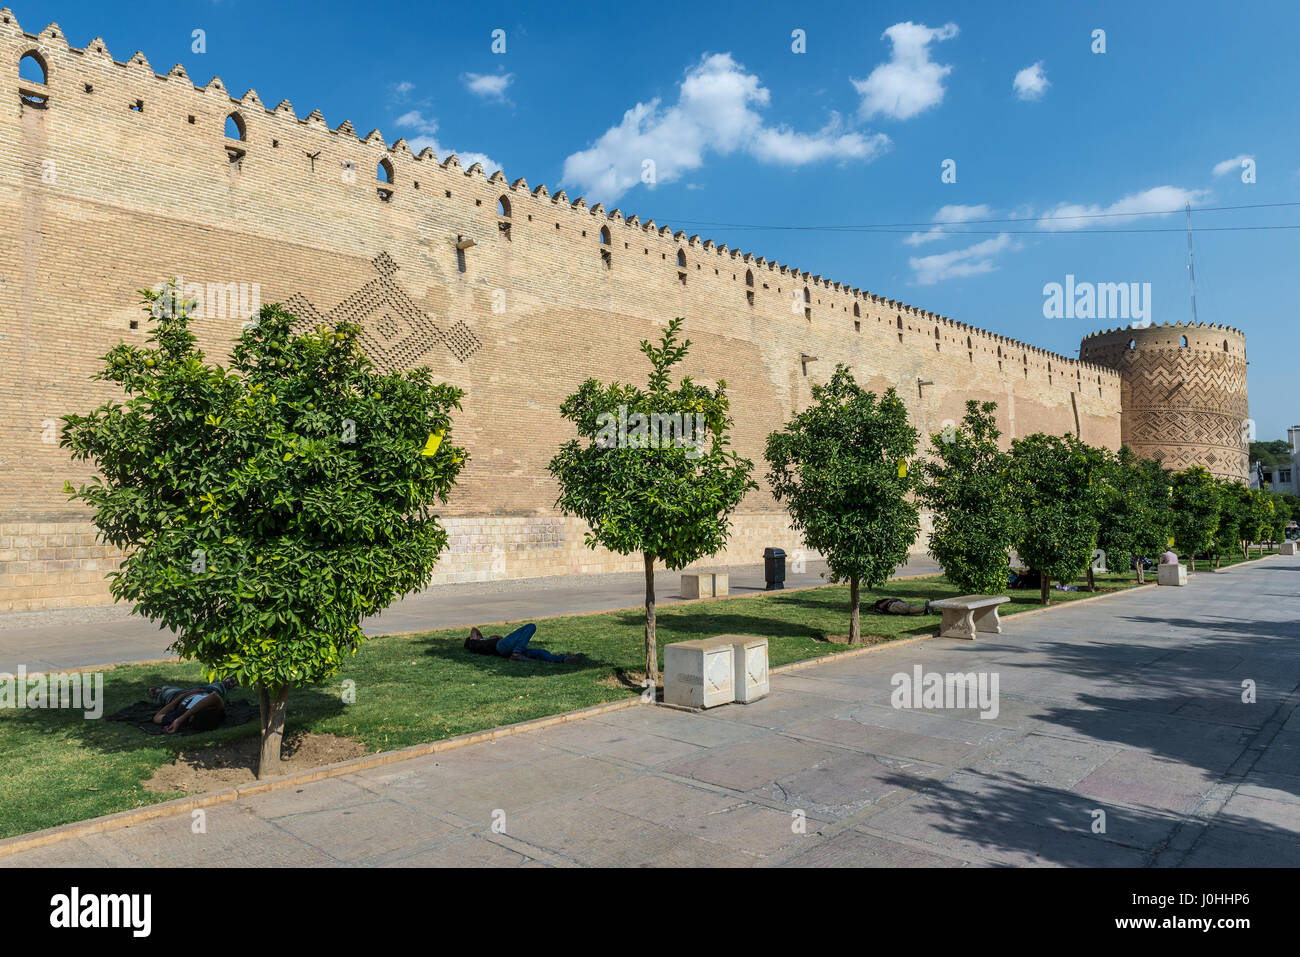 Castle of Karim Khan citadel (Arg-e Karim Khan) build during Zand dynasty in Shiraz city, capital of Fars Province - Stock Image